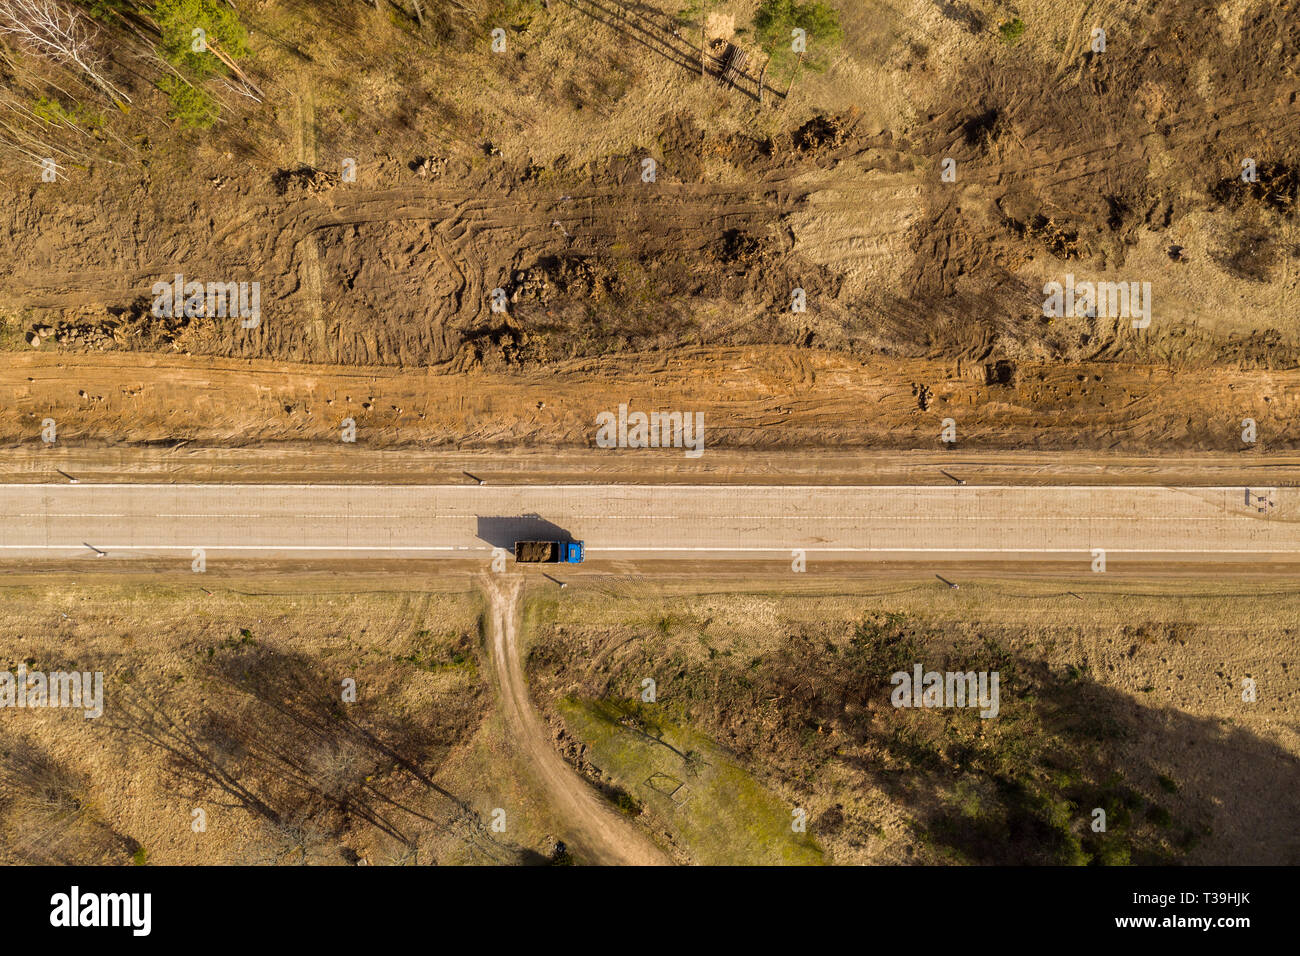 Drone view of truck and road repair work in rural landscape. Drone photography. - Stock Image